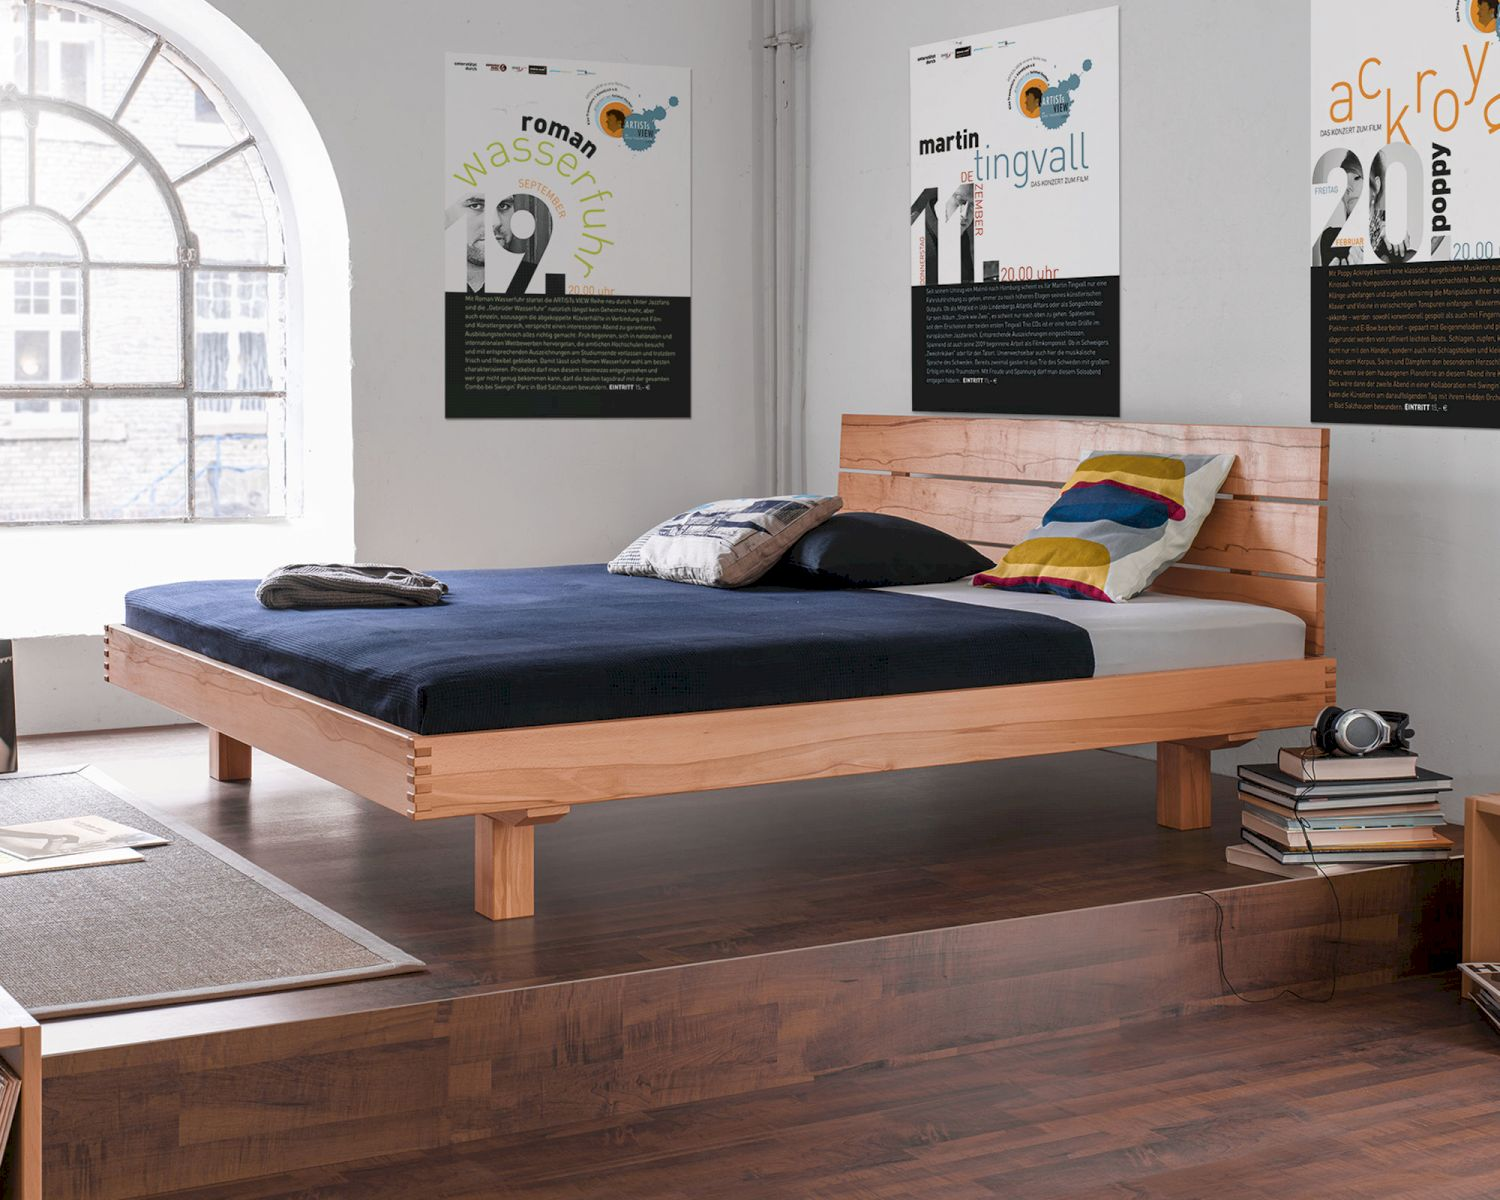 dormiente massivholz bett plain bestellen. Black Bedroom Furniture Sets. Home Design Ideas